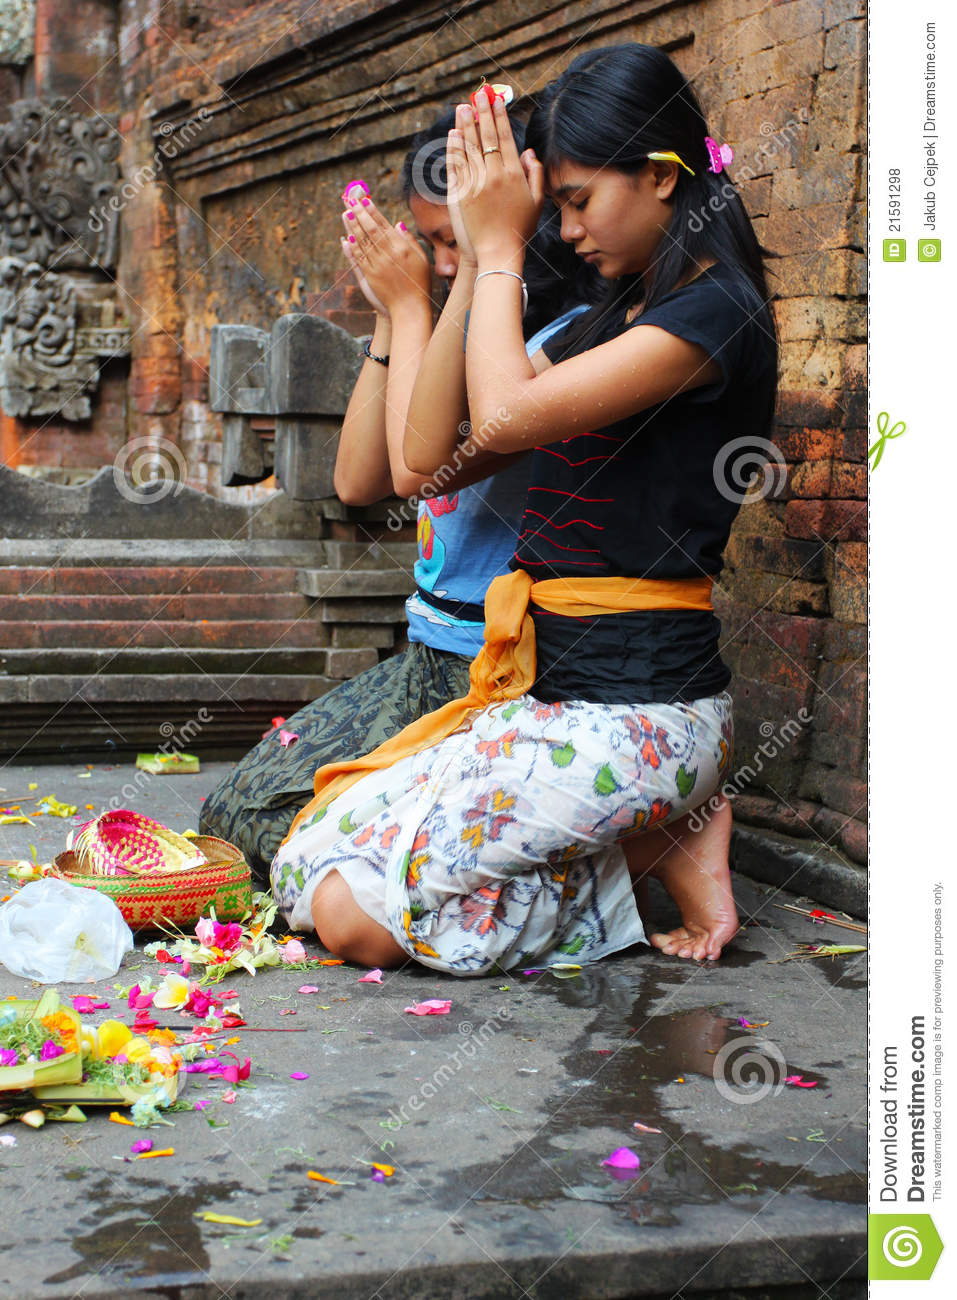 Hindu prayers editorial stock photo. Image of prayer ...